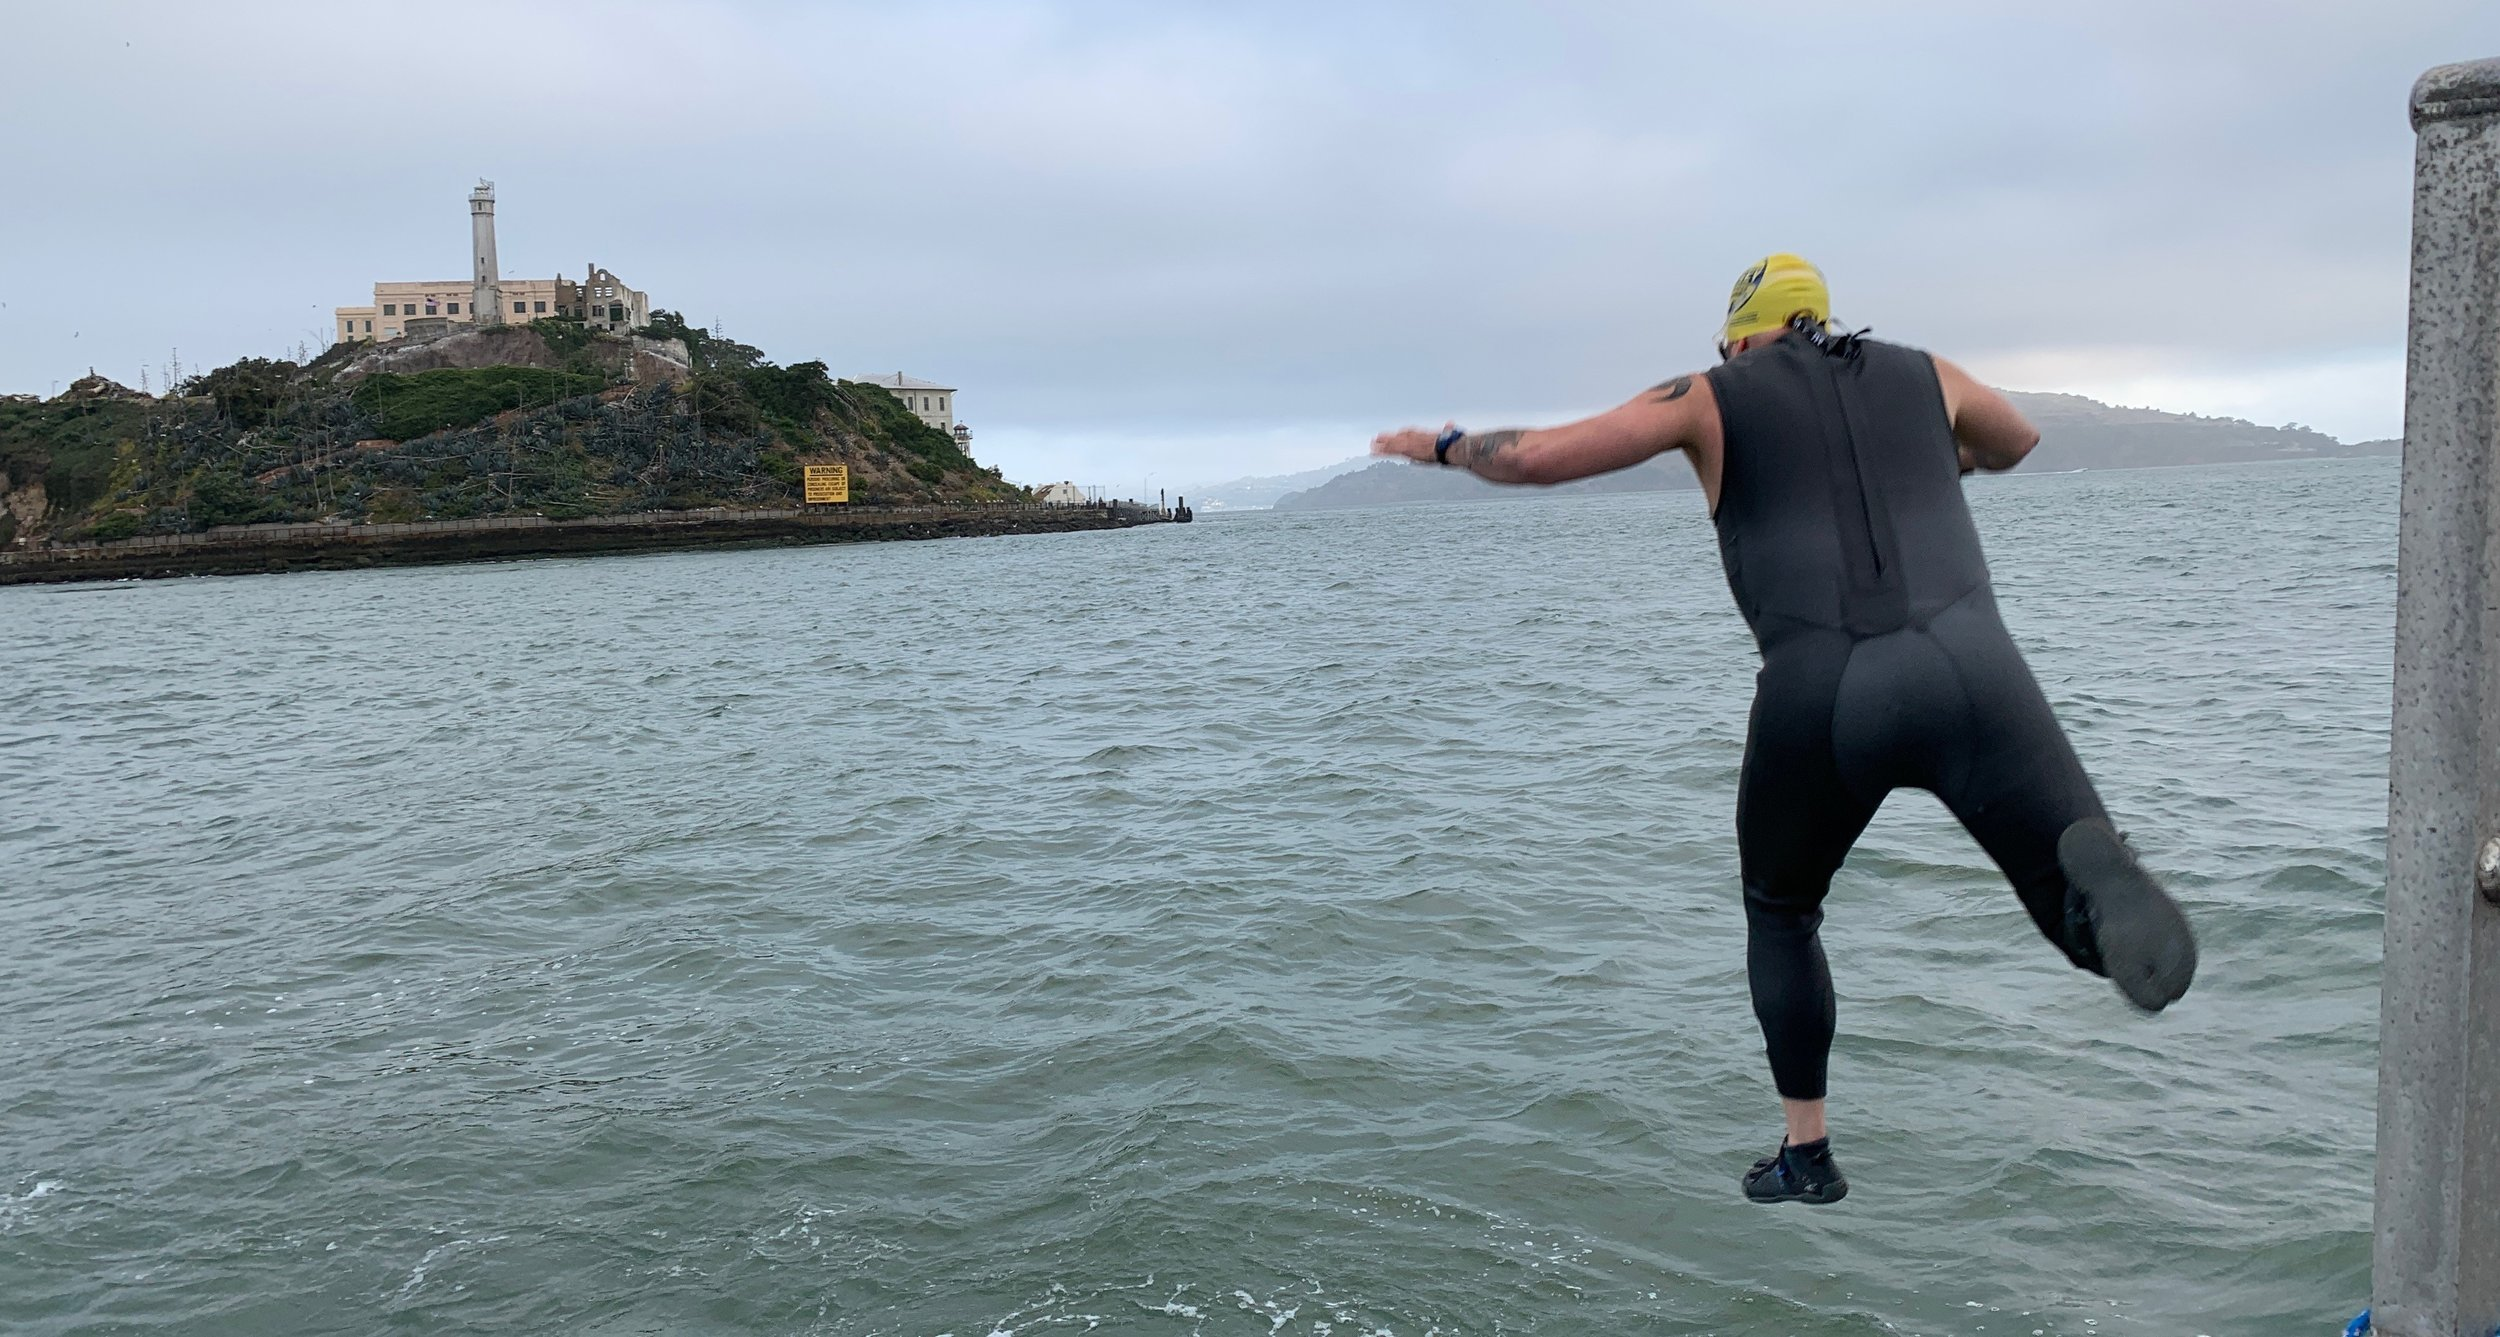 Jumping in Alcatraz Open Water Swimming Odyssey